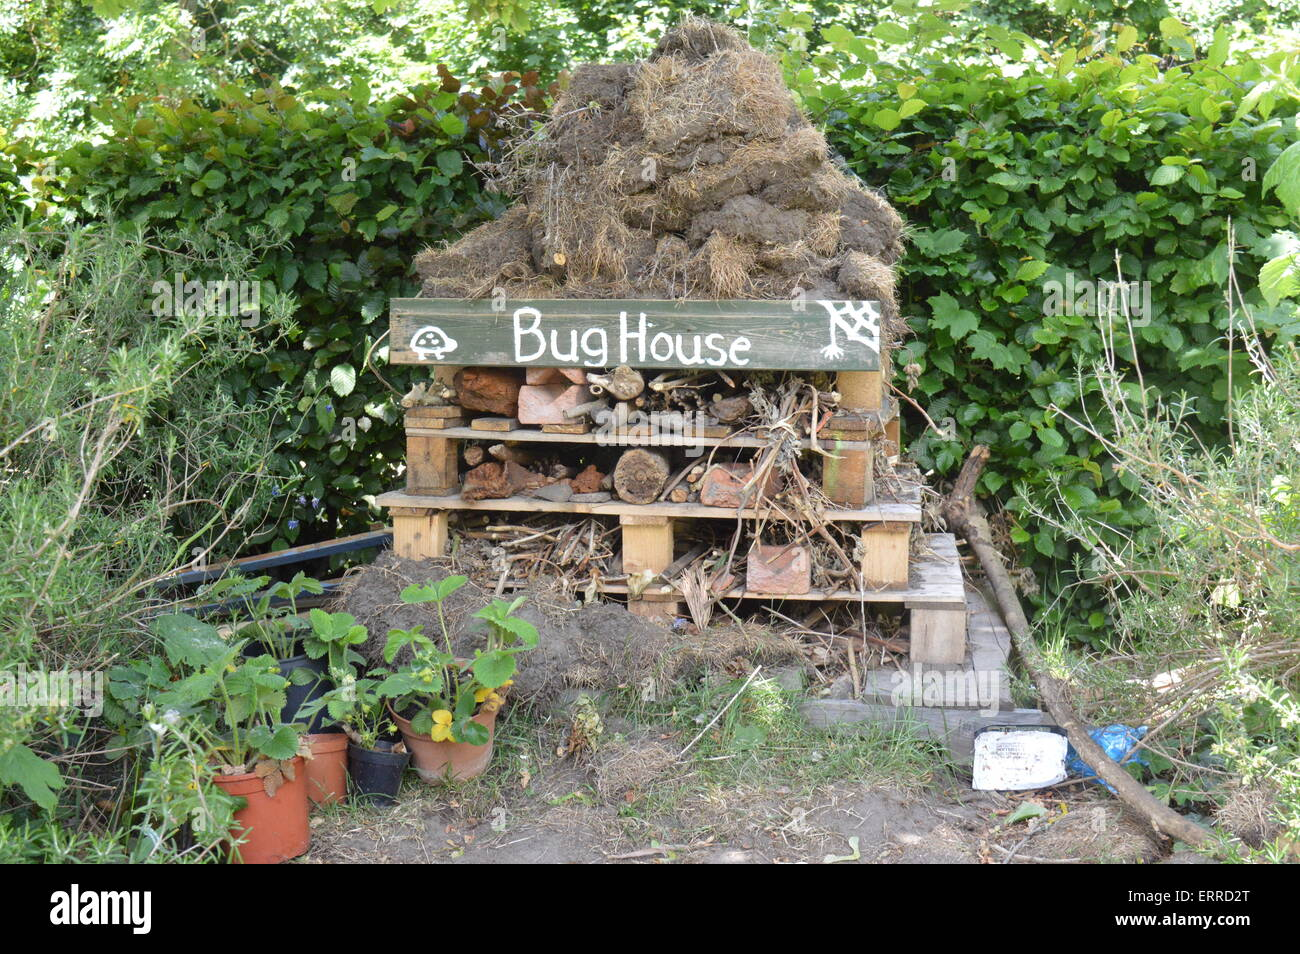 Bug house built out of recycled pallets, wood, twigs and sods of earth. Vivienne Johnson/Alamy Live News - Stock Image